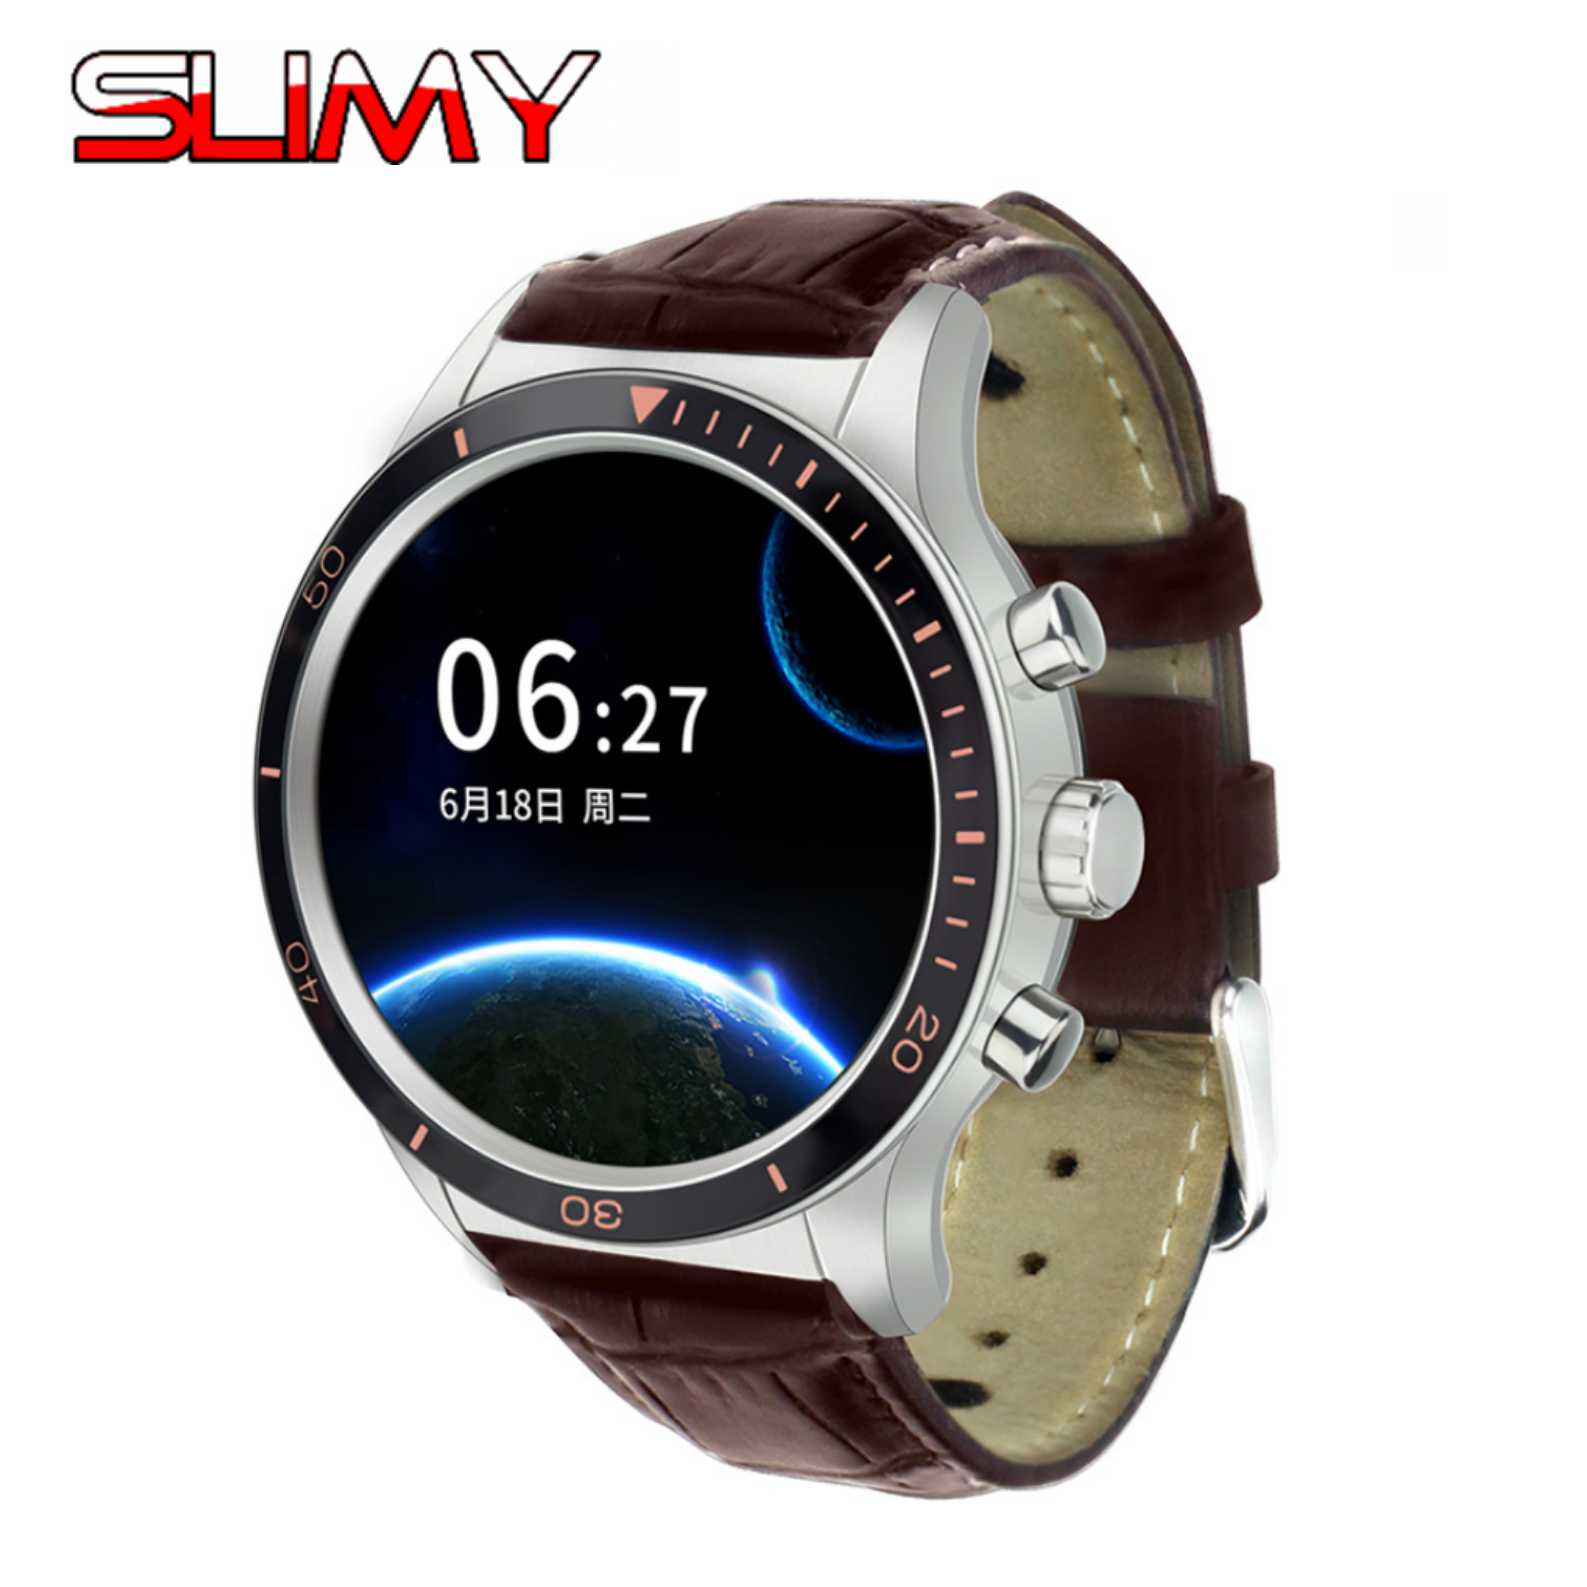 Slimy Y3 Better than KW88 KW99 Smart Watch 3G 4GB ROM 512MB RAM WIFI 1.39 Smartwatch Cell Phone Heart Rate Monitor for Android y3 smart watch android 5 1 os quad core 512mb ram 4gb rom heart rate monitor 3g wifi wristwatch